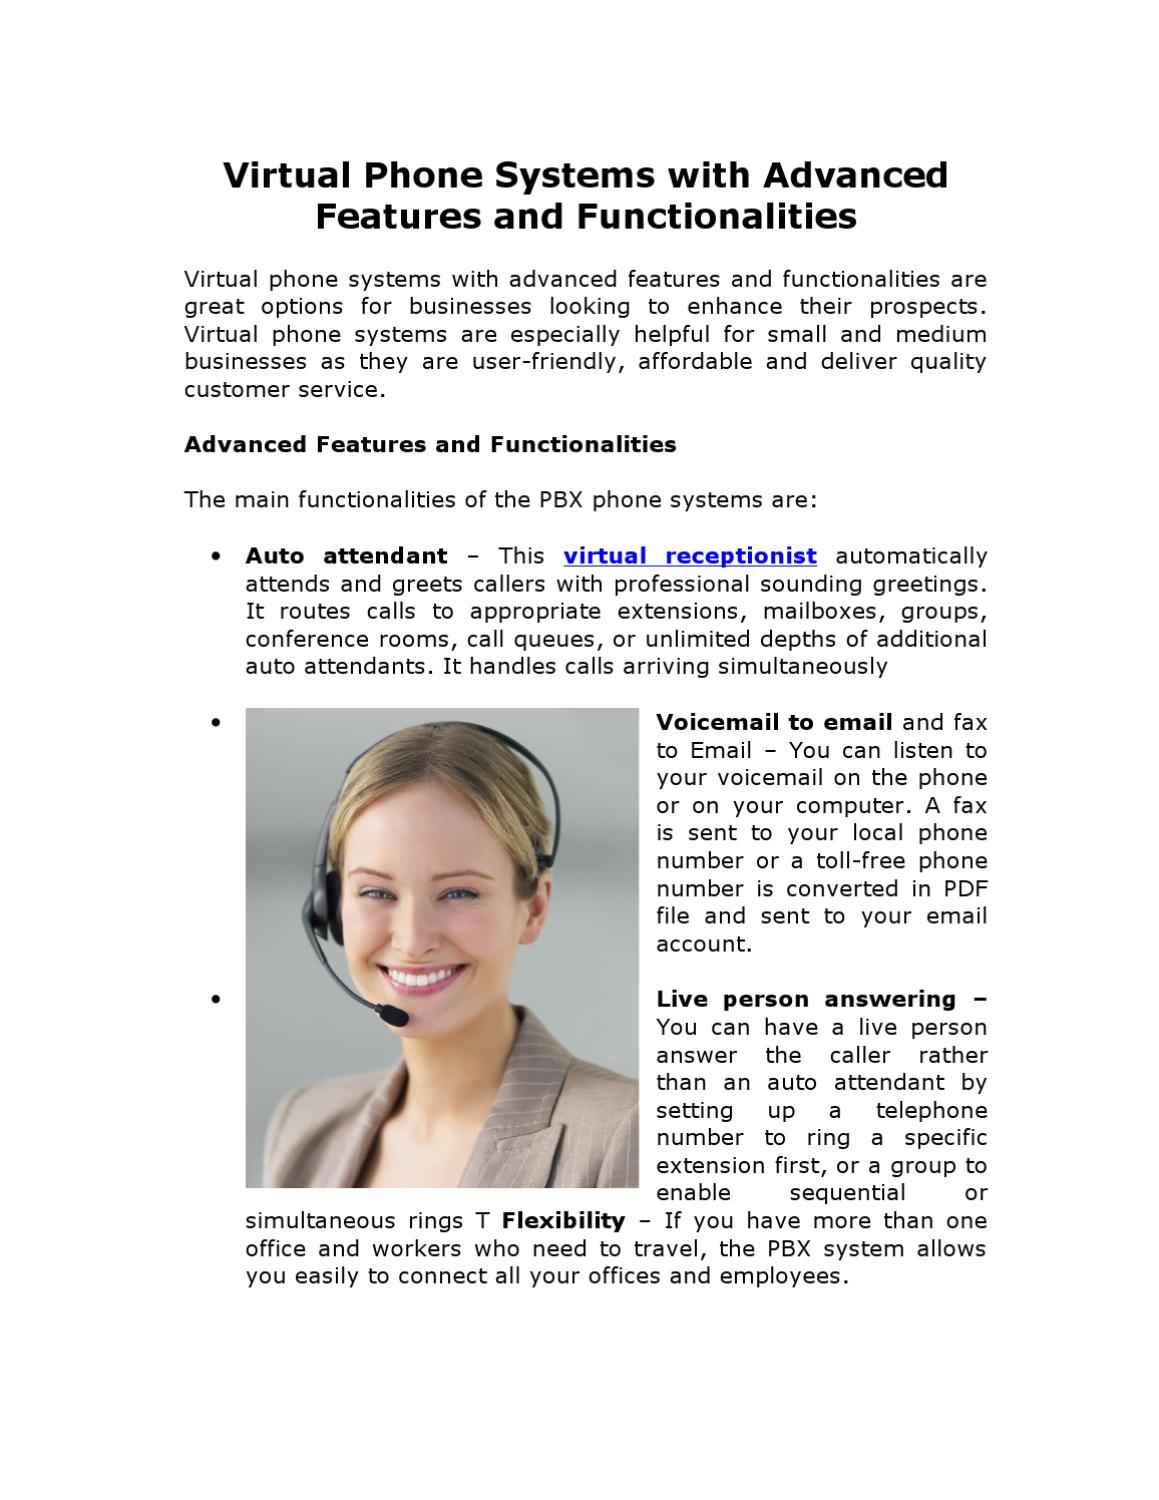 Virtual Phone Systems With Advanced Features And Functionalities By